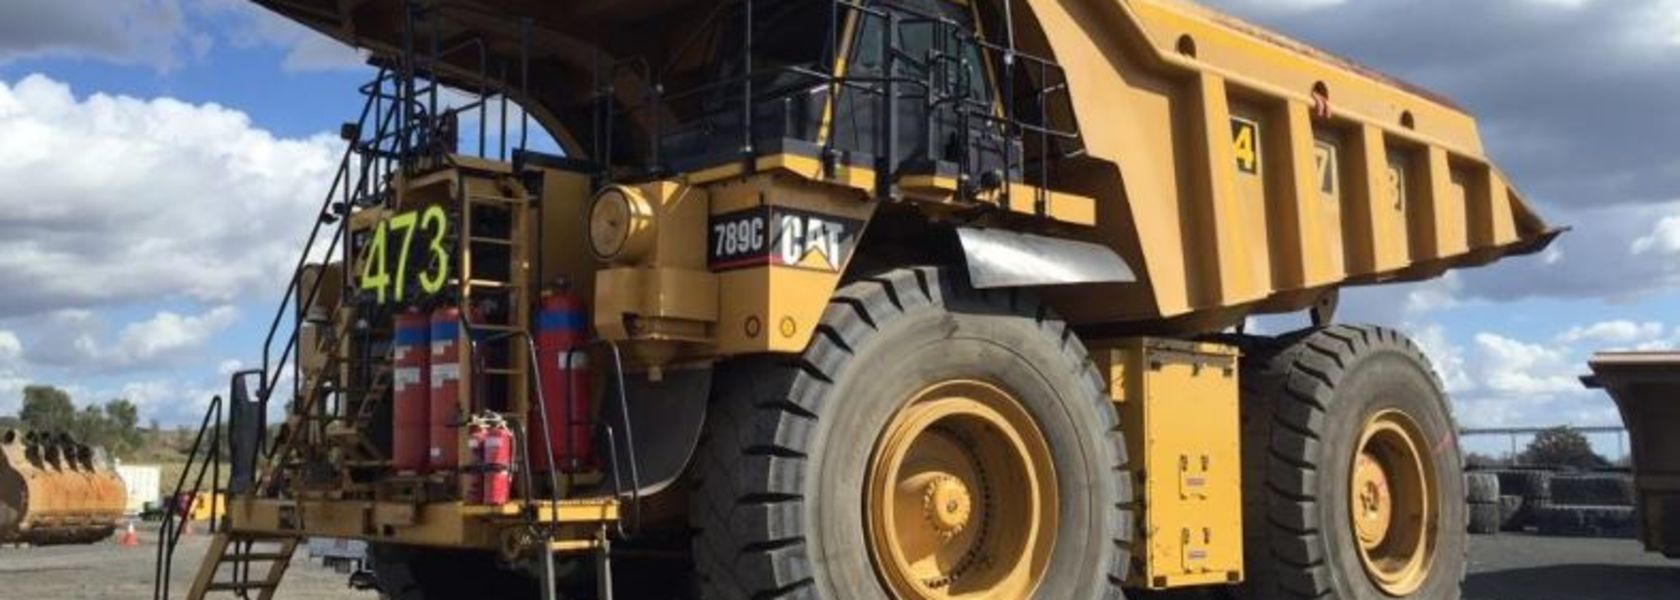 New Acland spends $11m on haul truck refurbishments